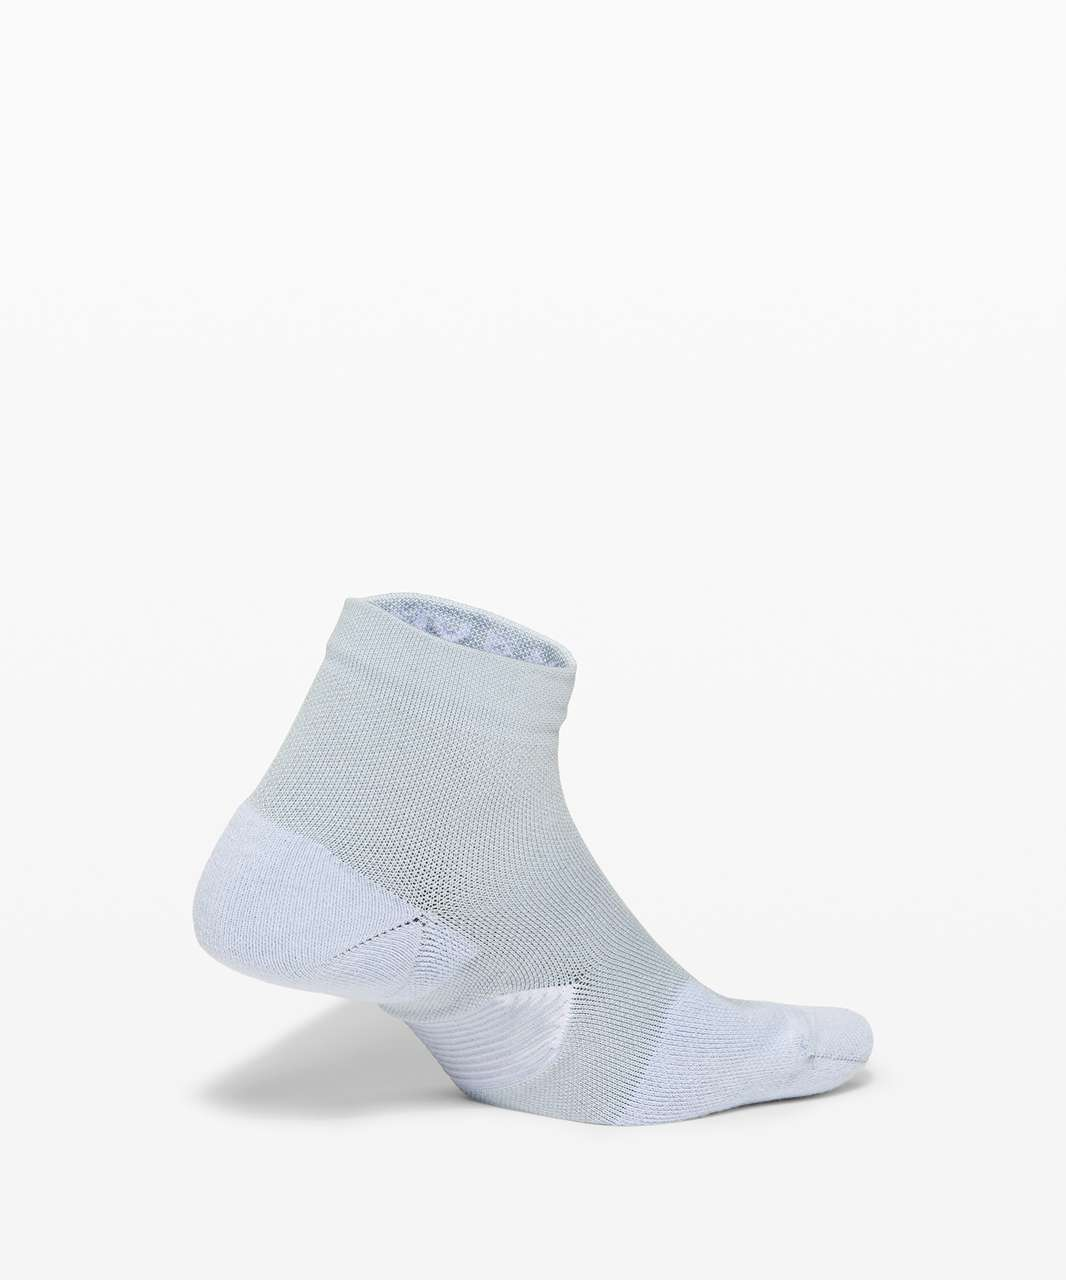 Lululemon Speed Ankle Sock *Silver - Daydream / White